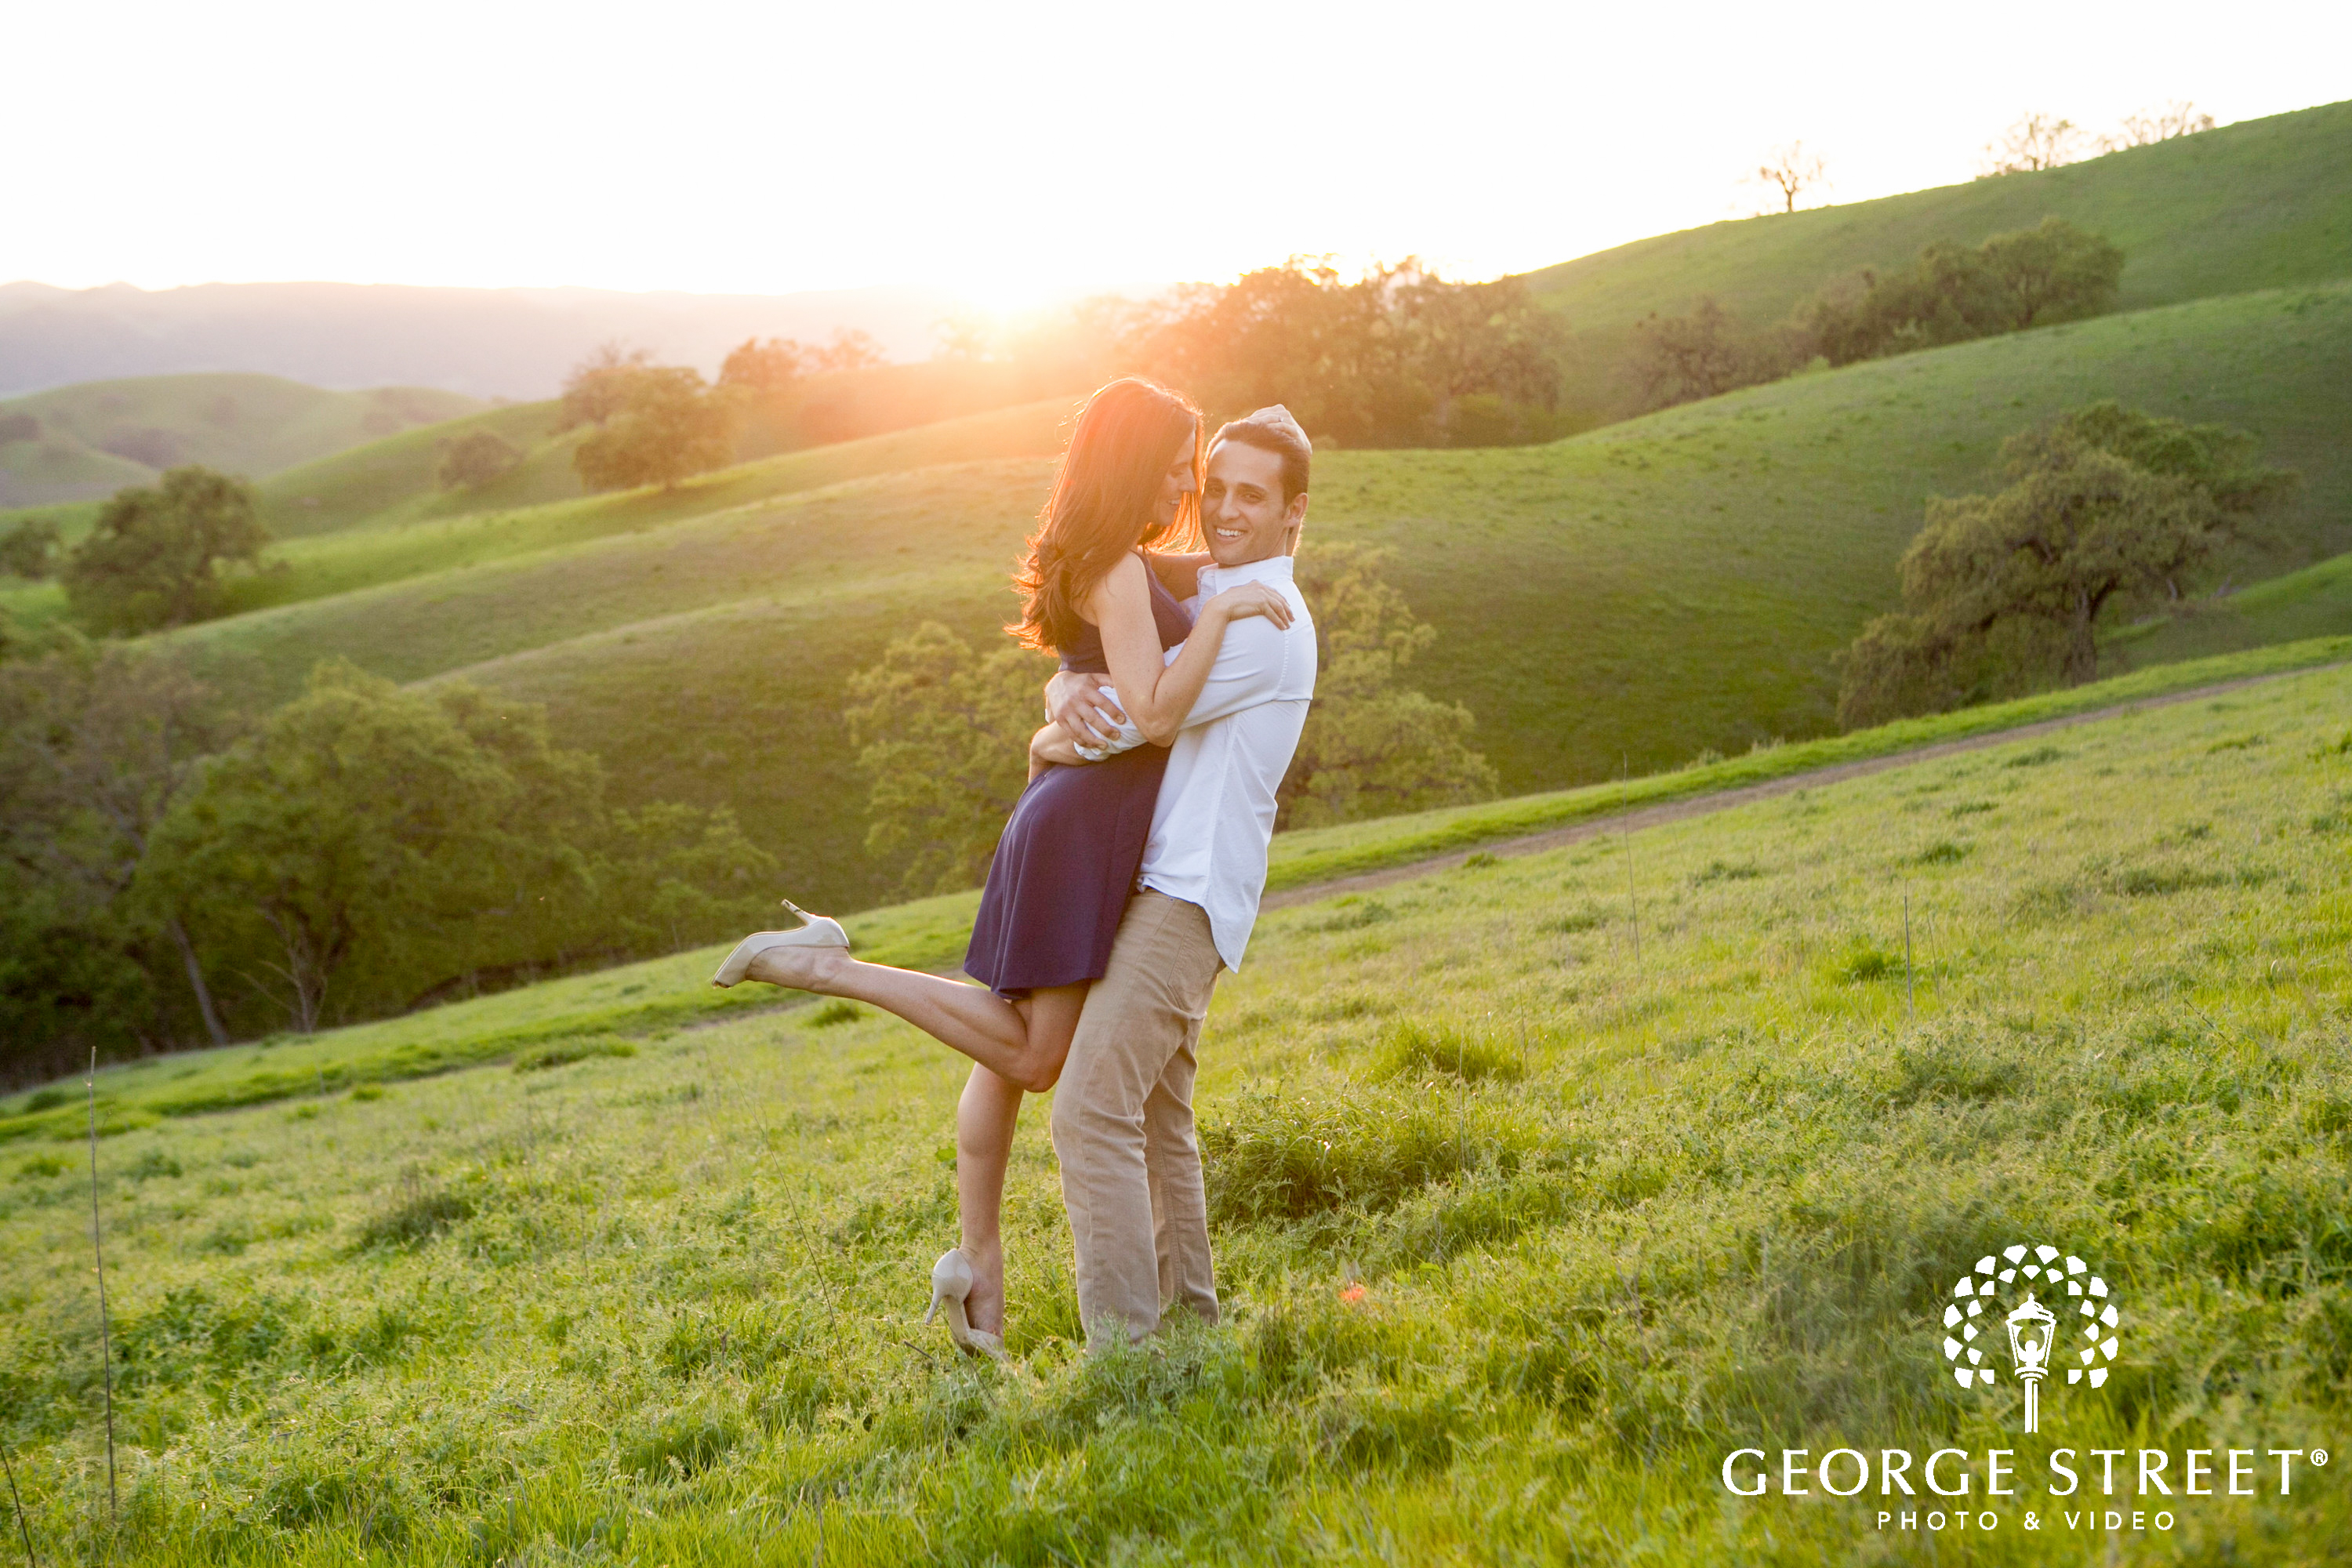 sunset portrait session locations